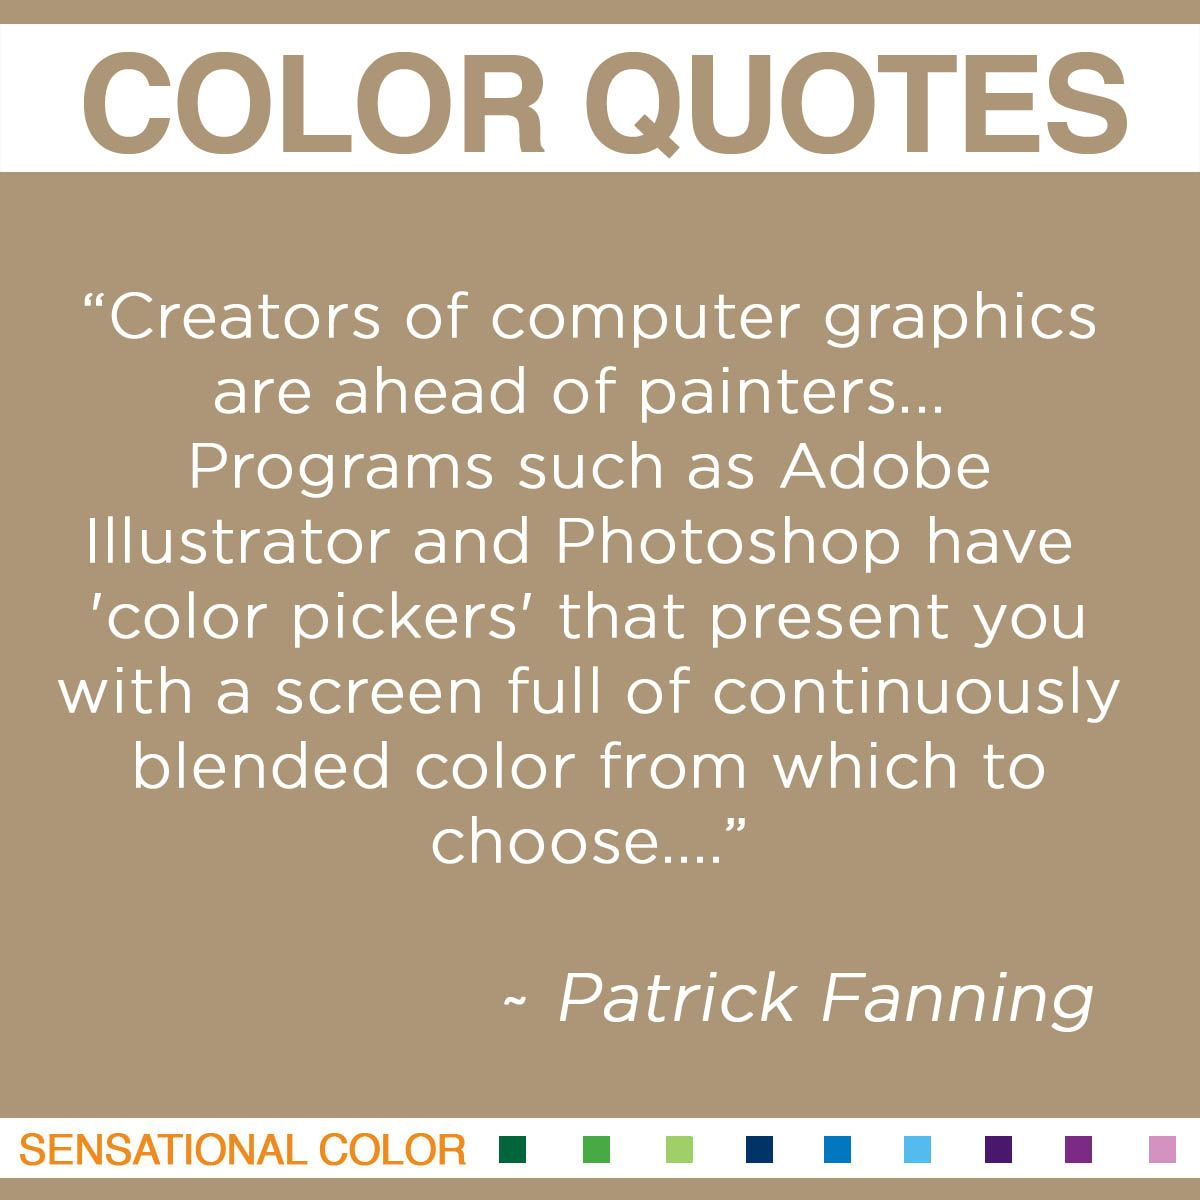 """Creators of computer graphics are ahead of painters… Programs such as Adobe Illustrator and Photoshop have 'color pickers' that present you with a screen full of continuously blended color from which to choose…"" - Patrick Fanning"